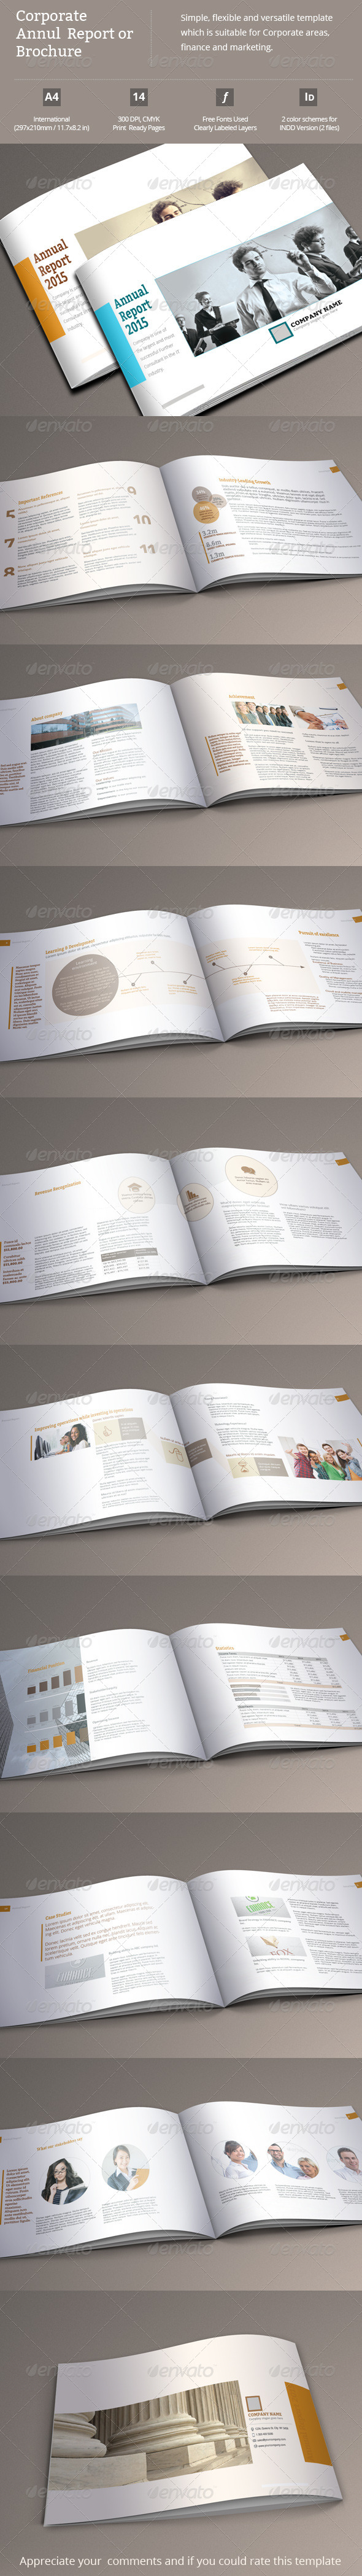 GraphicRiver Corporate Annual Report or Brochure 8763546